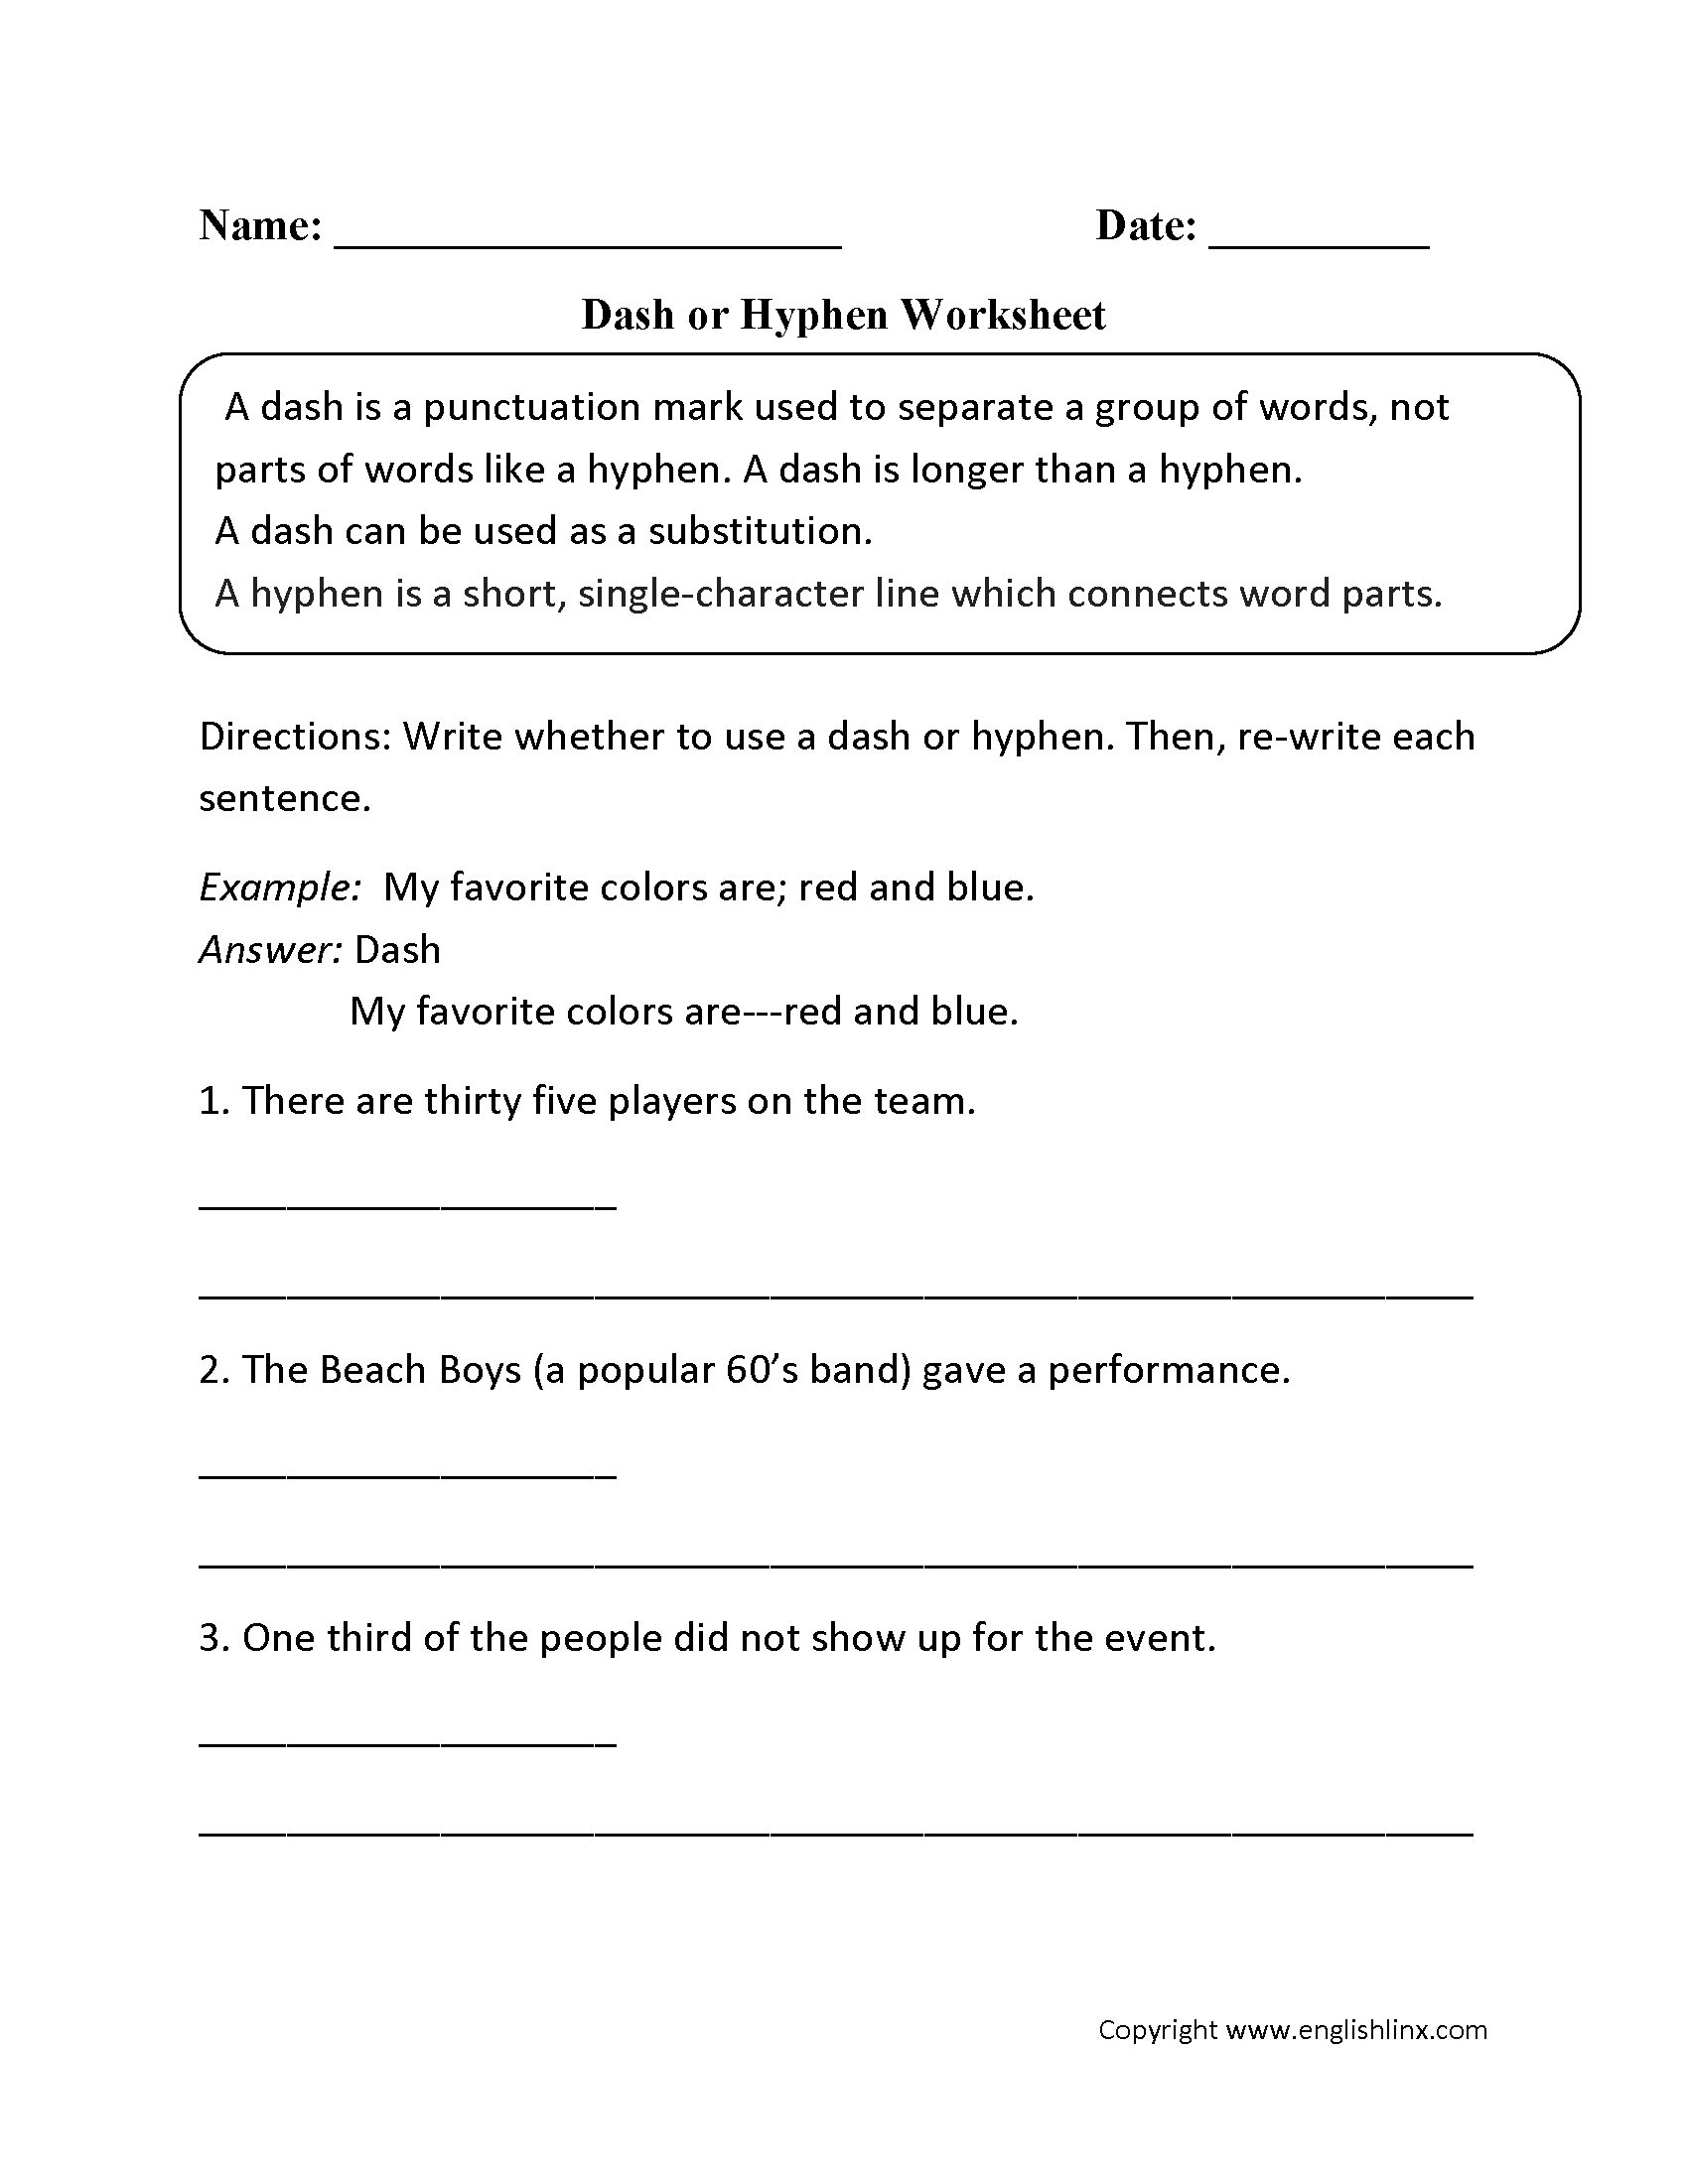 Punctuation Worksheets  Dash Worksheets Throughout Hyphens And Dashes Worksheet Answers